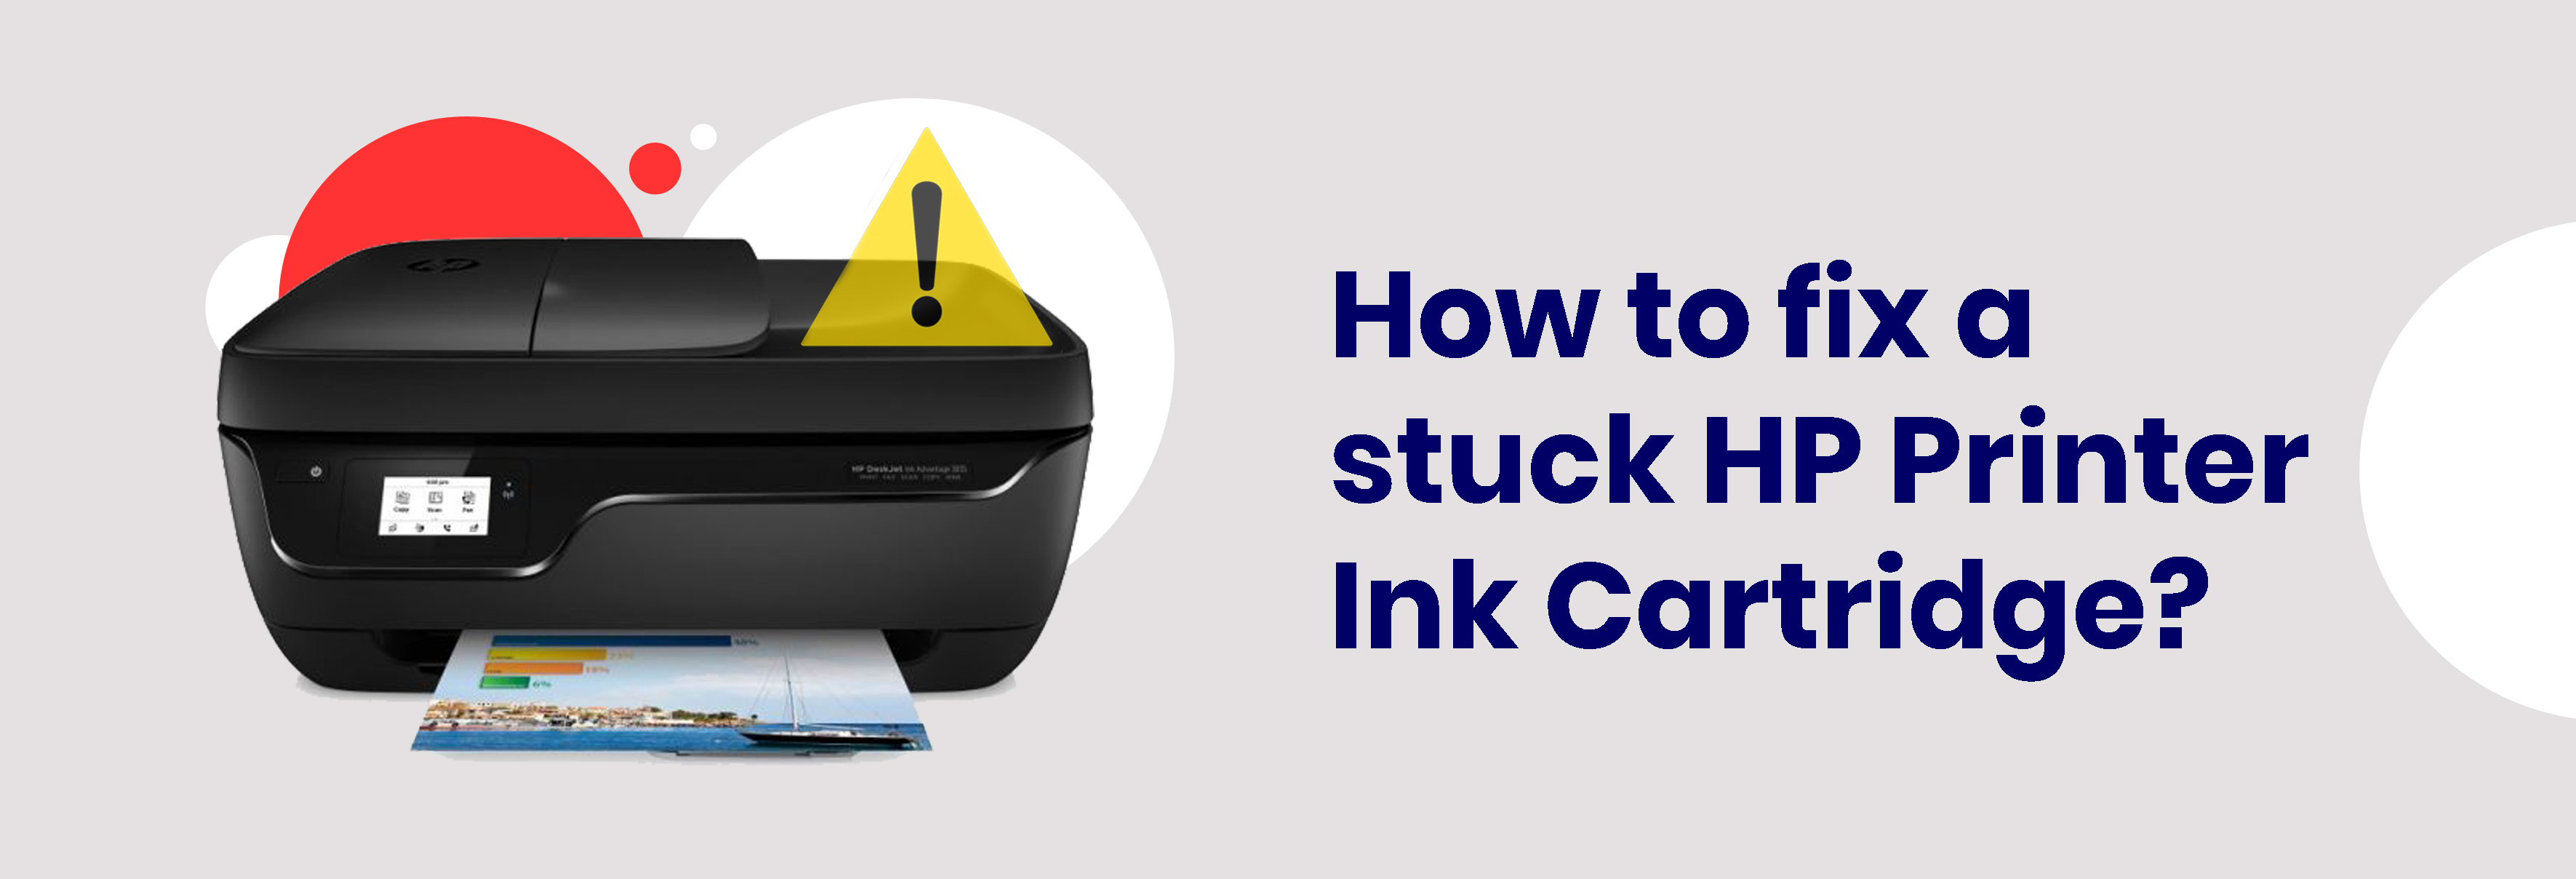 How to fix a stuck HP Printer Ink Cartridge